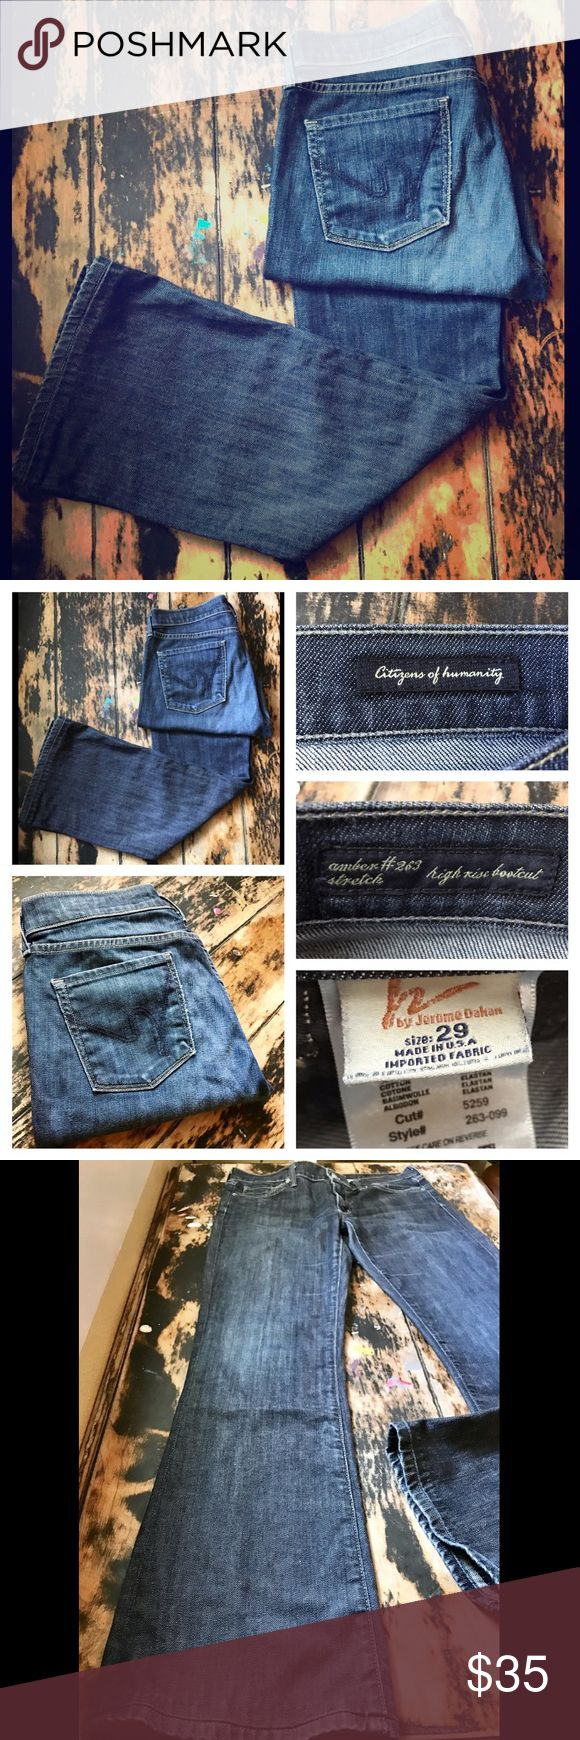 """🎄SALE🎄Citizens of Humanity Bootcut Denim **SALE PRICE FIRM UNLESS BUNDLED** A great pair of jeans by Citizens of humanity. Preloved but in great condition! Inseam is 31"""" long. The style is Amber #263 stretch; high rise bootcut. Size 29. These are a great wash! Citizens of Humanity Jeans"""